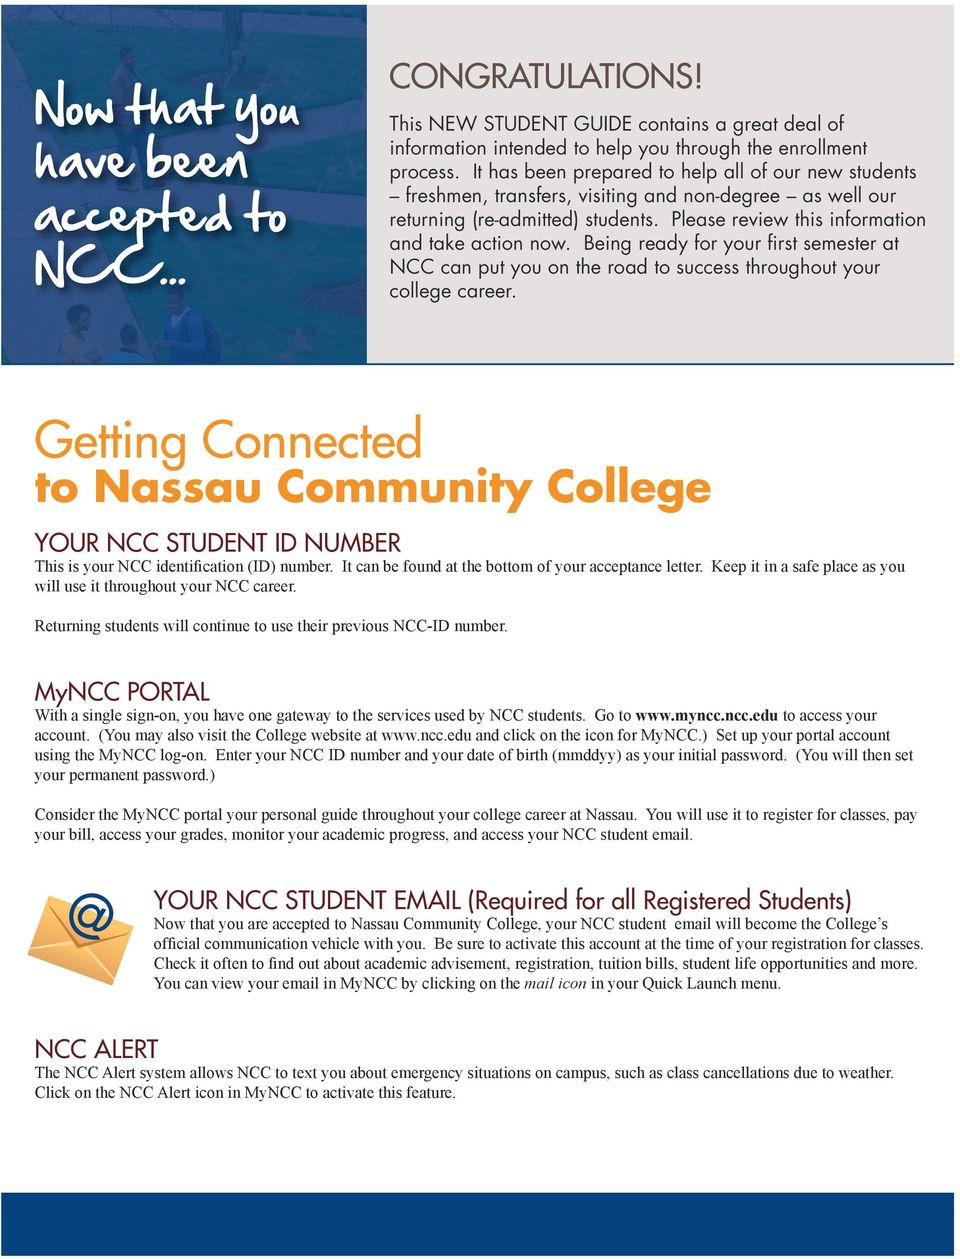 Ncc.edu New Student Guide To Enrollment At Nassau Community For 2020 Nassau Community College Academic Calendar